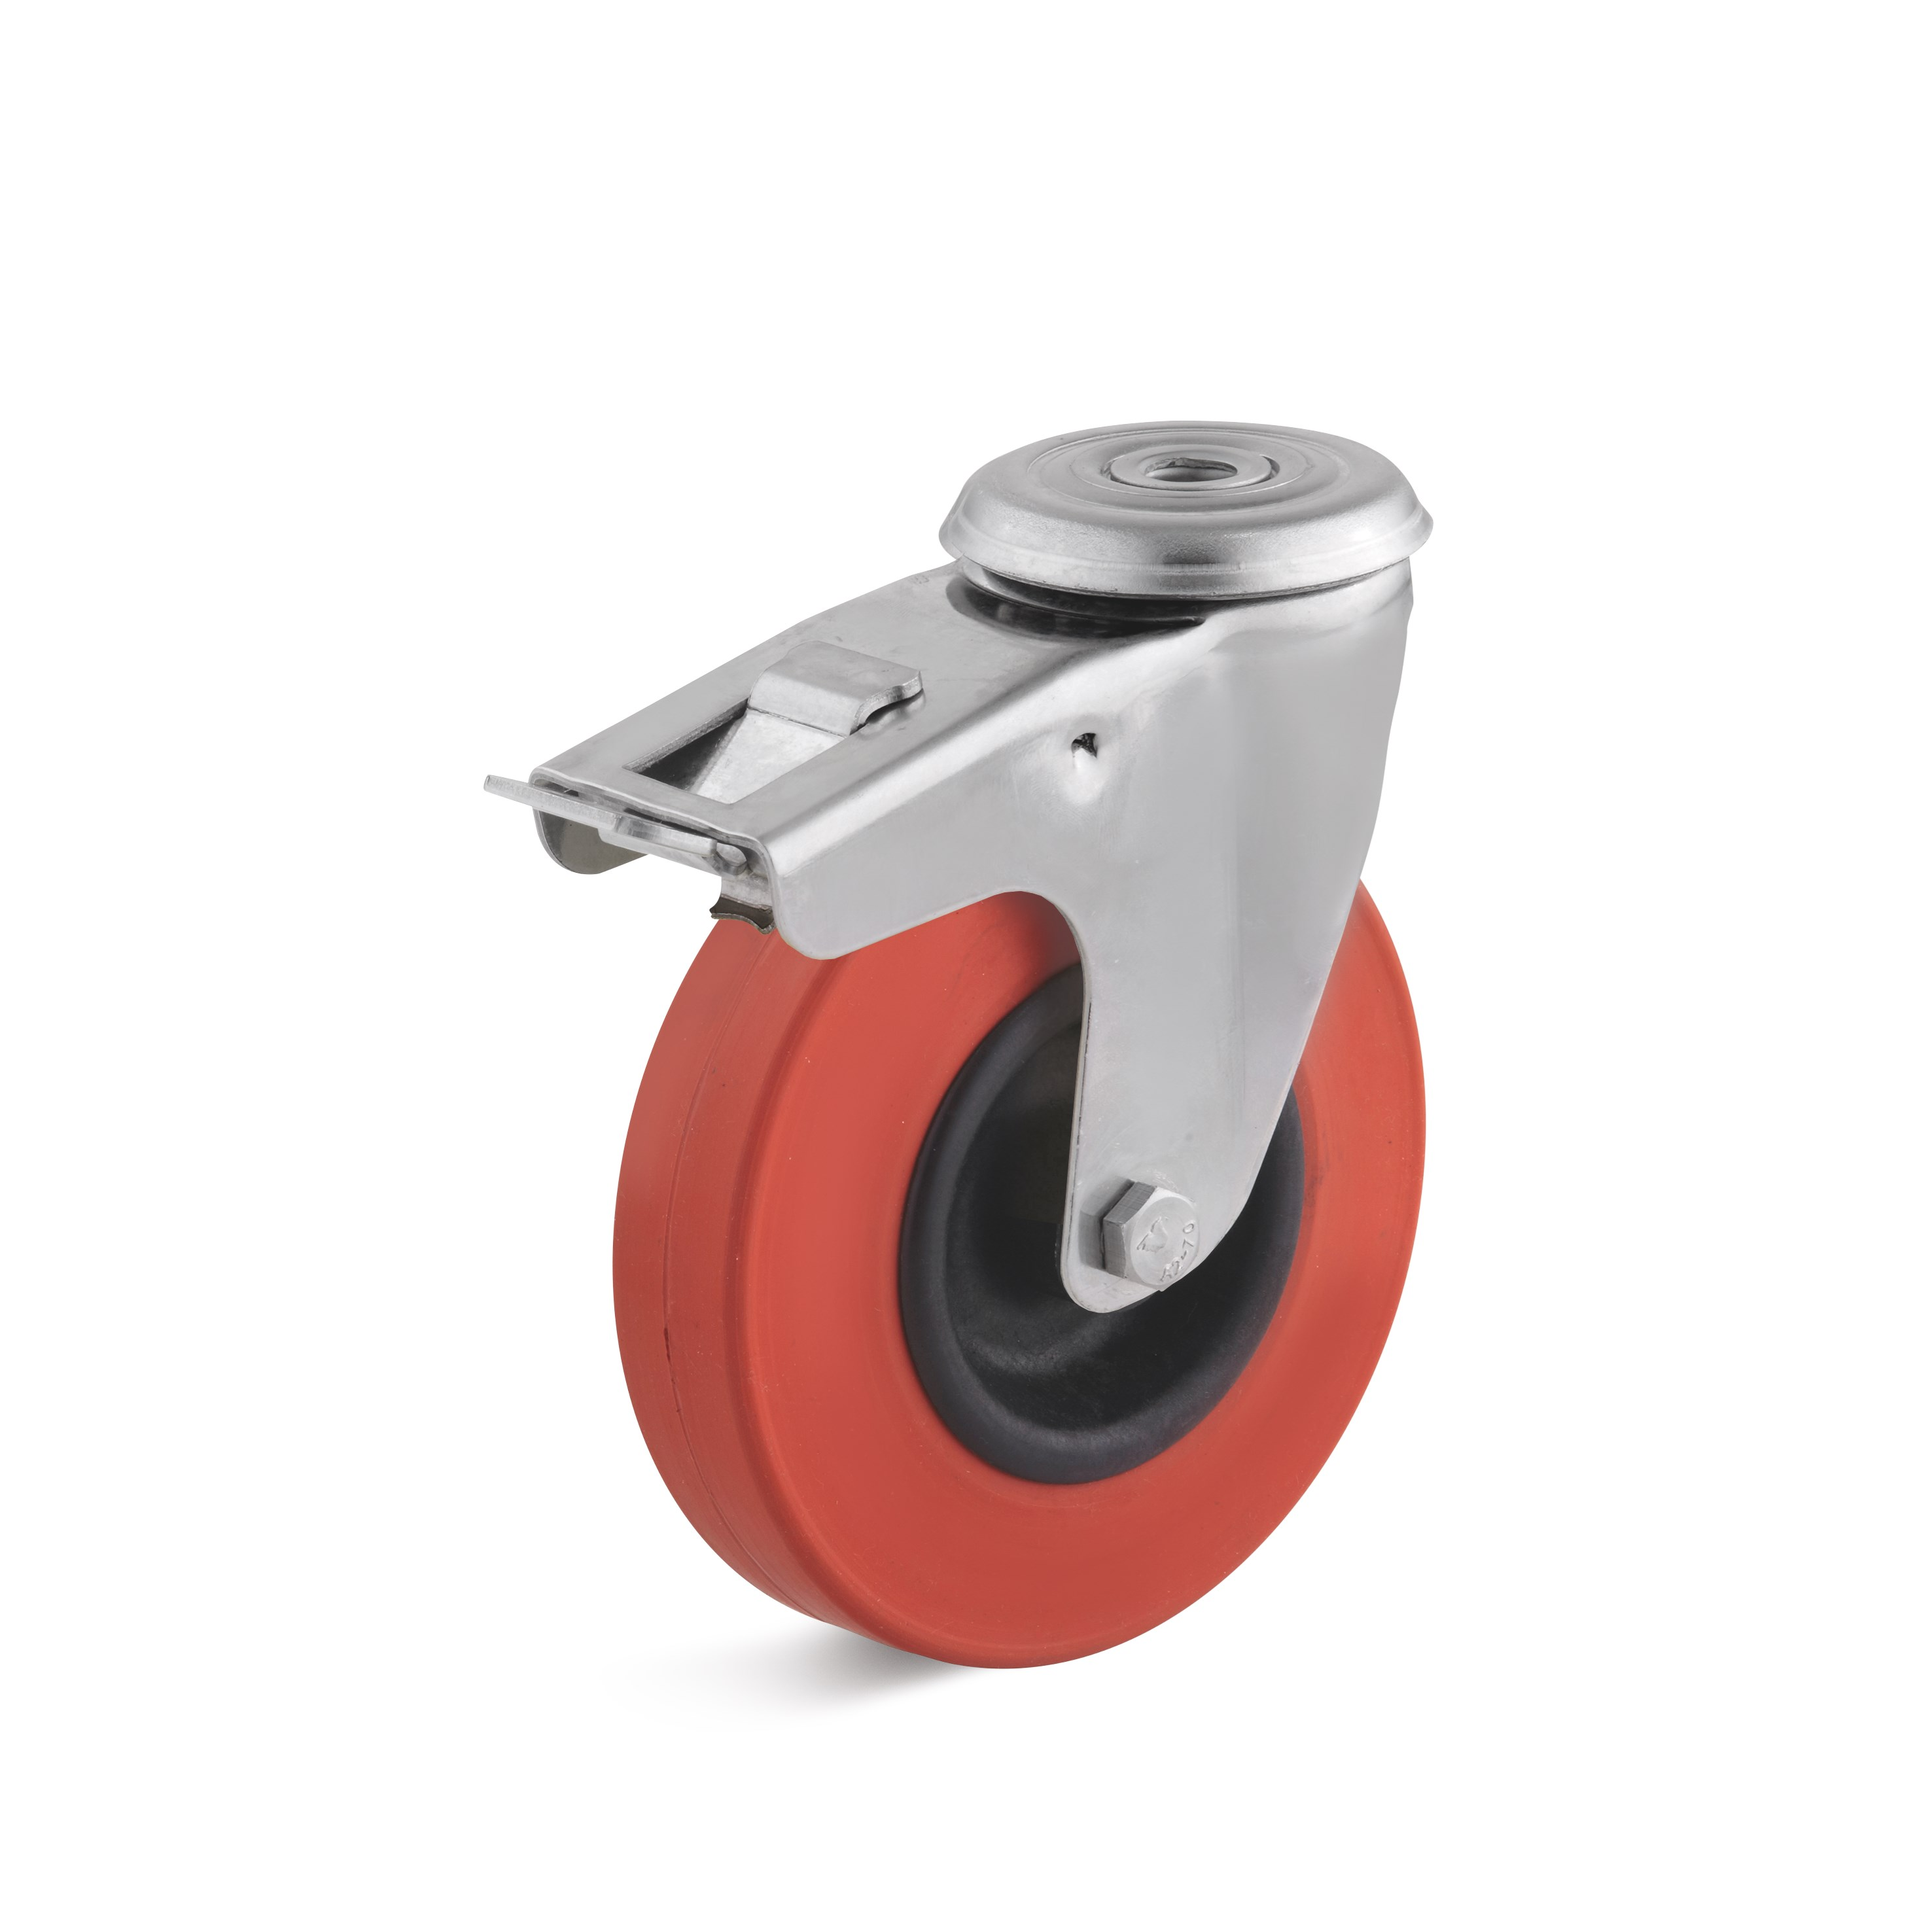 Stainless steel swivel castor with double stop and bolt hole, heat-resistant wheel